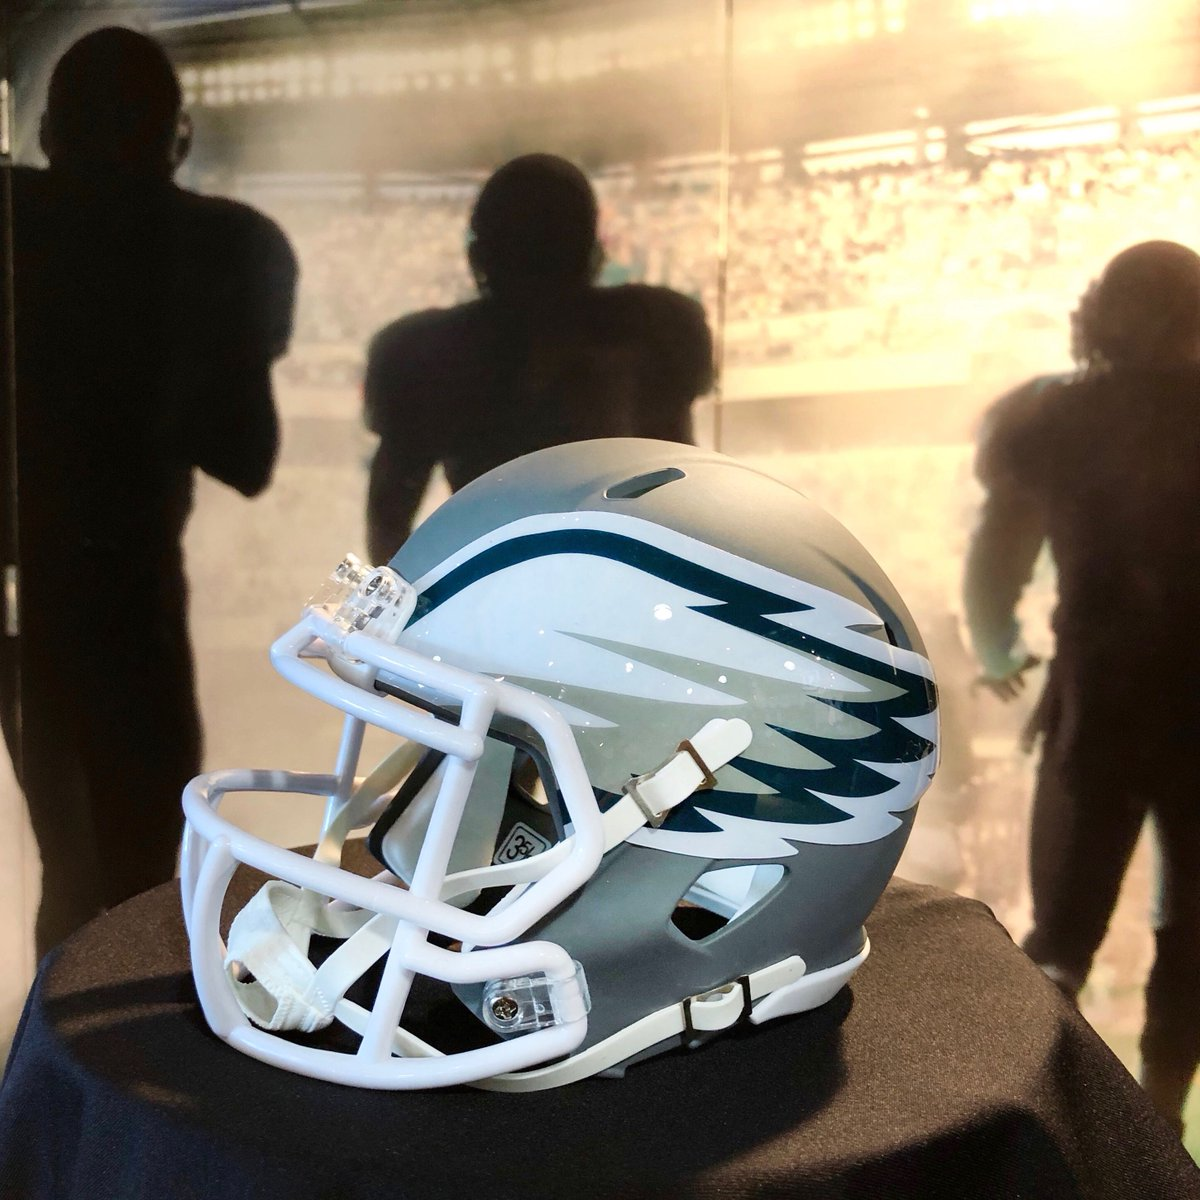 Our limited-edition gray mini helmet is a unique decorative piece.  #FlyEaglesFly  <br>http://pic.twitter.com/upayqxmtGC